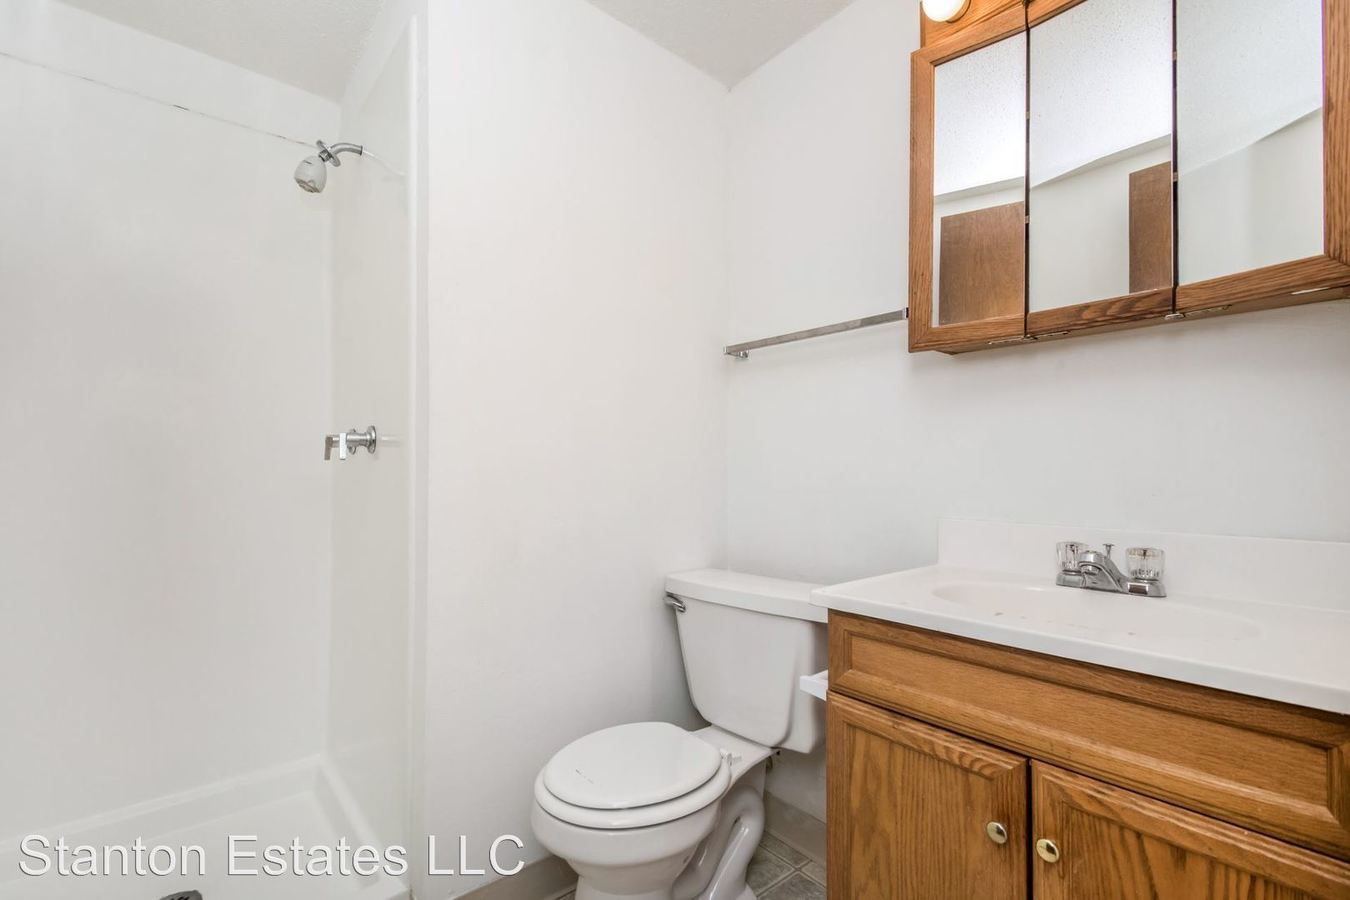 2 Bedrooms 2 Bathrooms Apartment for rent at 2221 Stanton Ave in Des Moines, IA